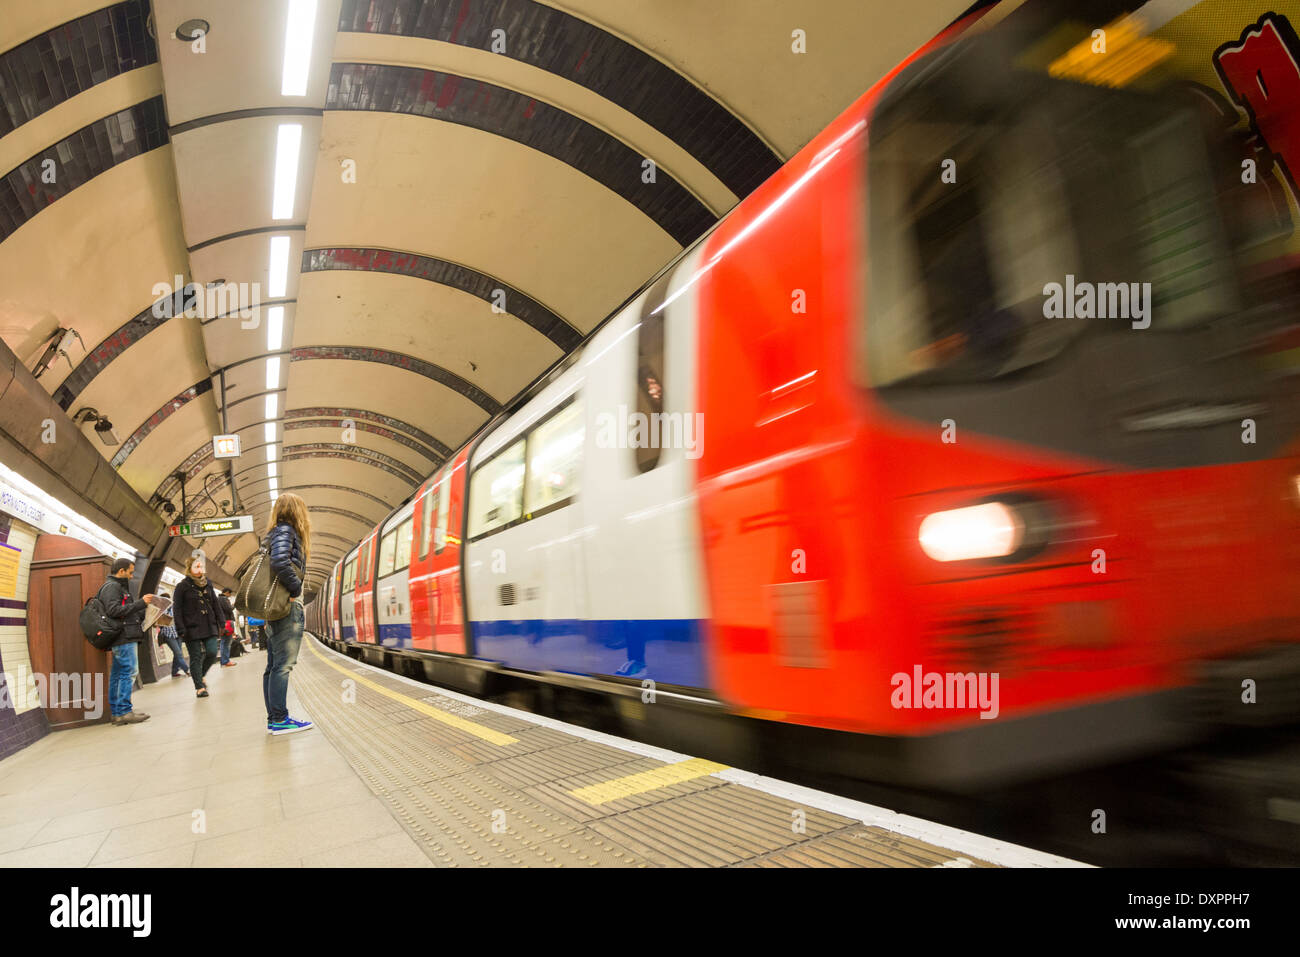 Northern Line London Underground train arriving at the station, UK - Stock Image